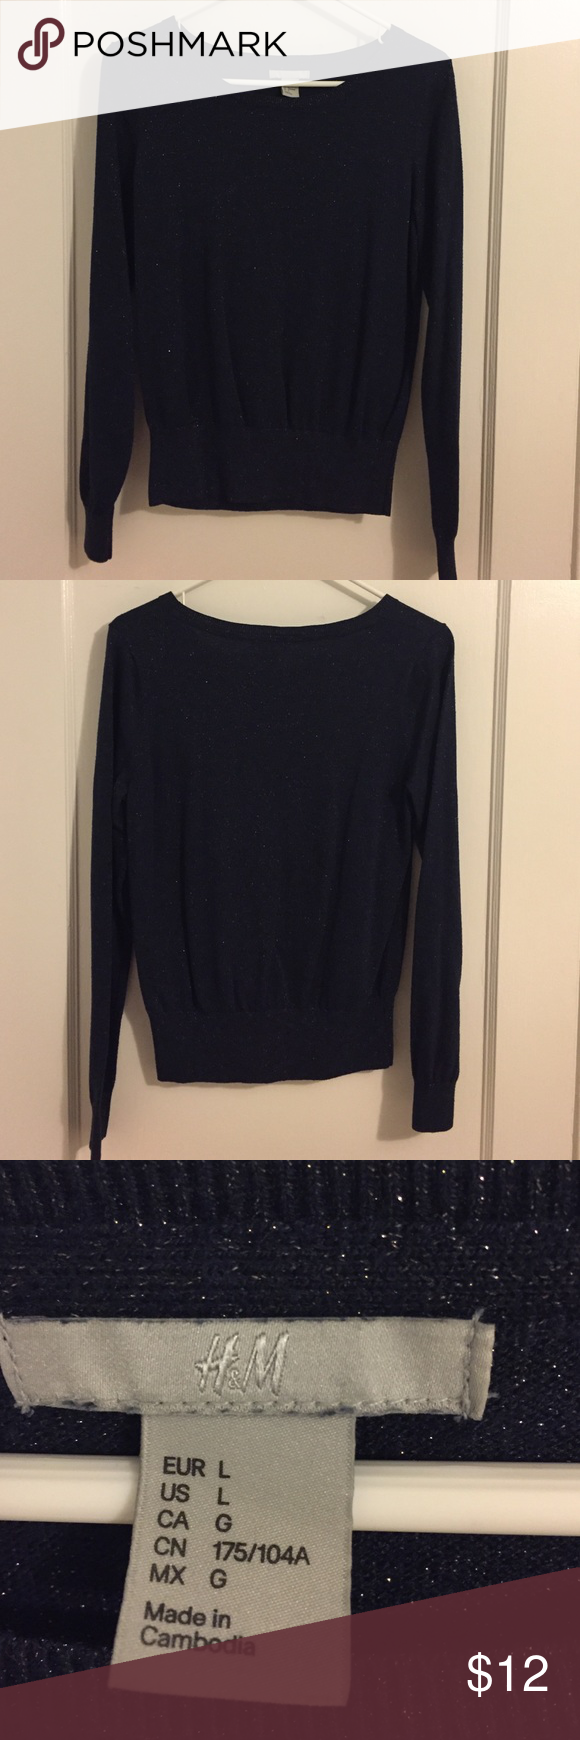 H&M Navy Blue Gold Shimmer Sweater | Blue gold, Navy blue and ...